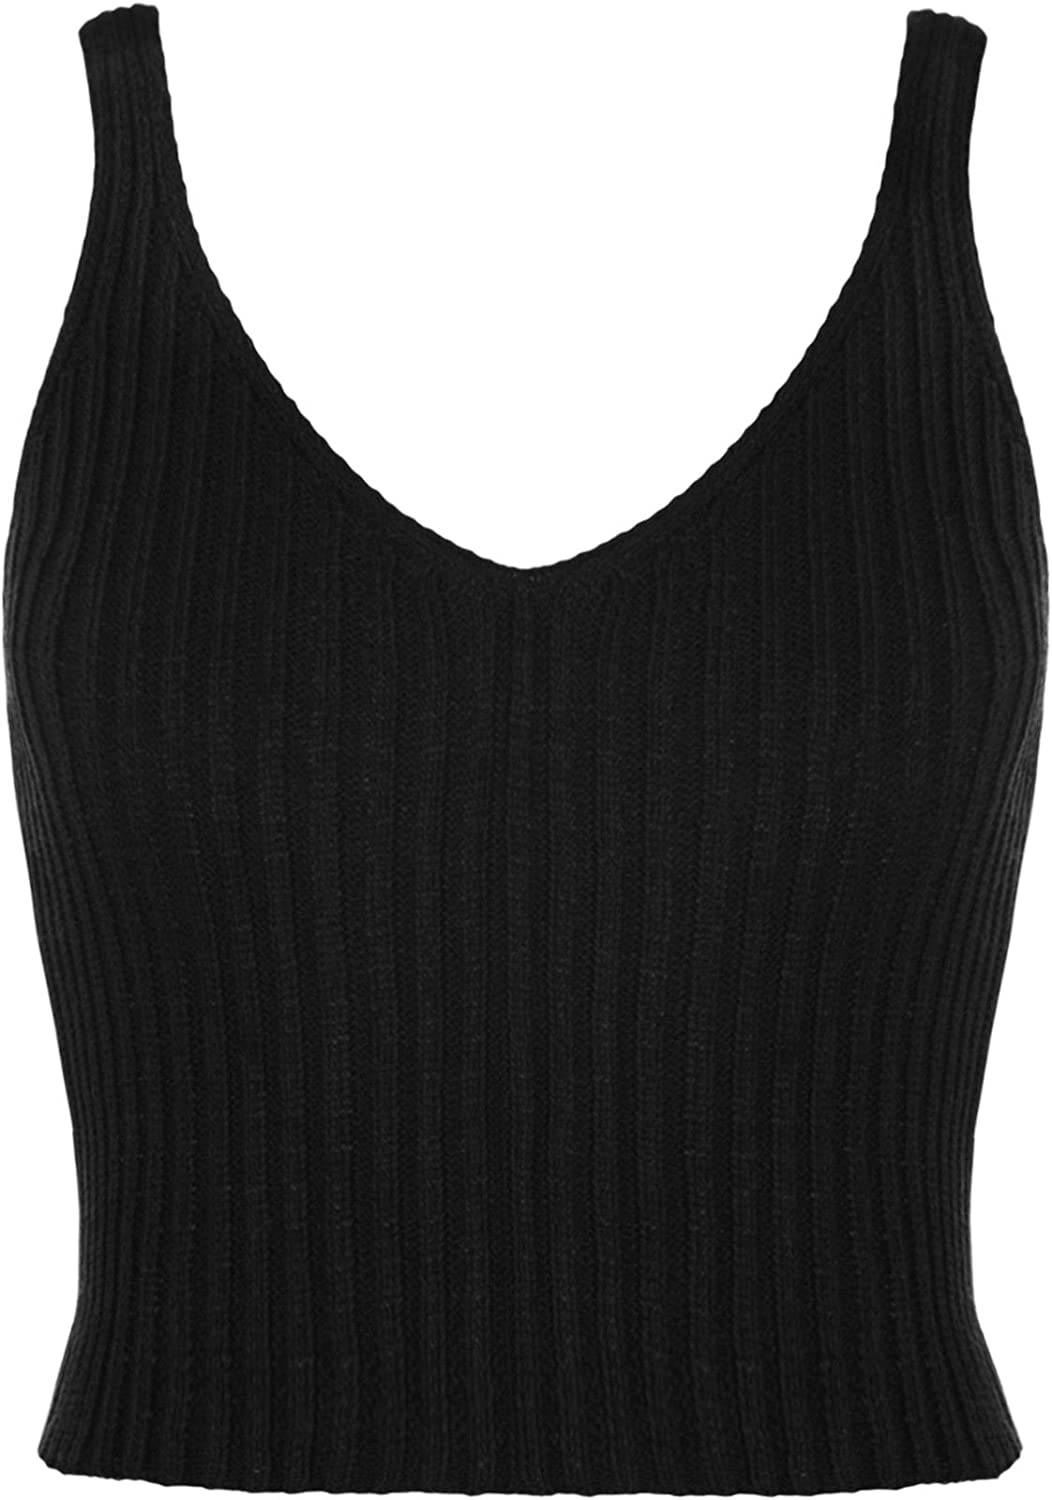 Janisramone Womens Ladies New V Neck Knitted Ribbed Plain Bralet Crop Top Sleeveless Summer Vest Top